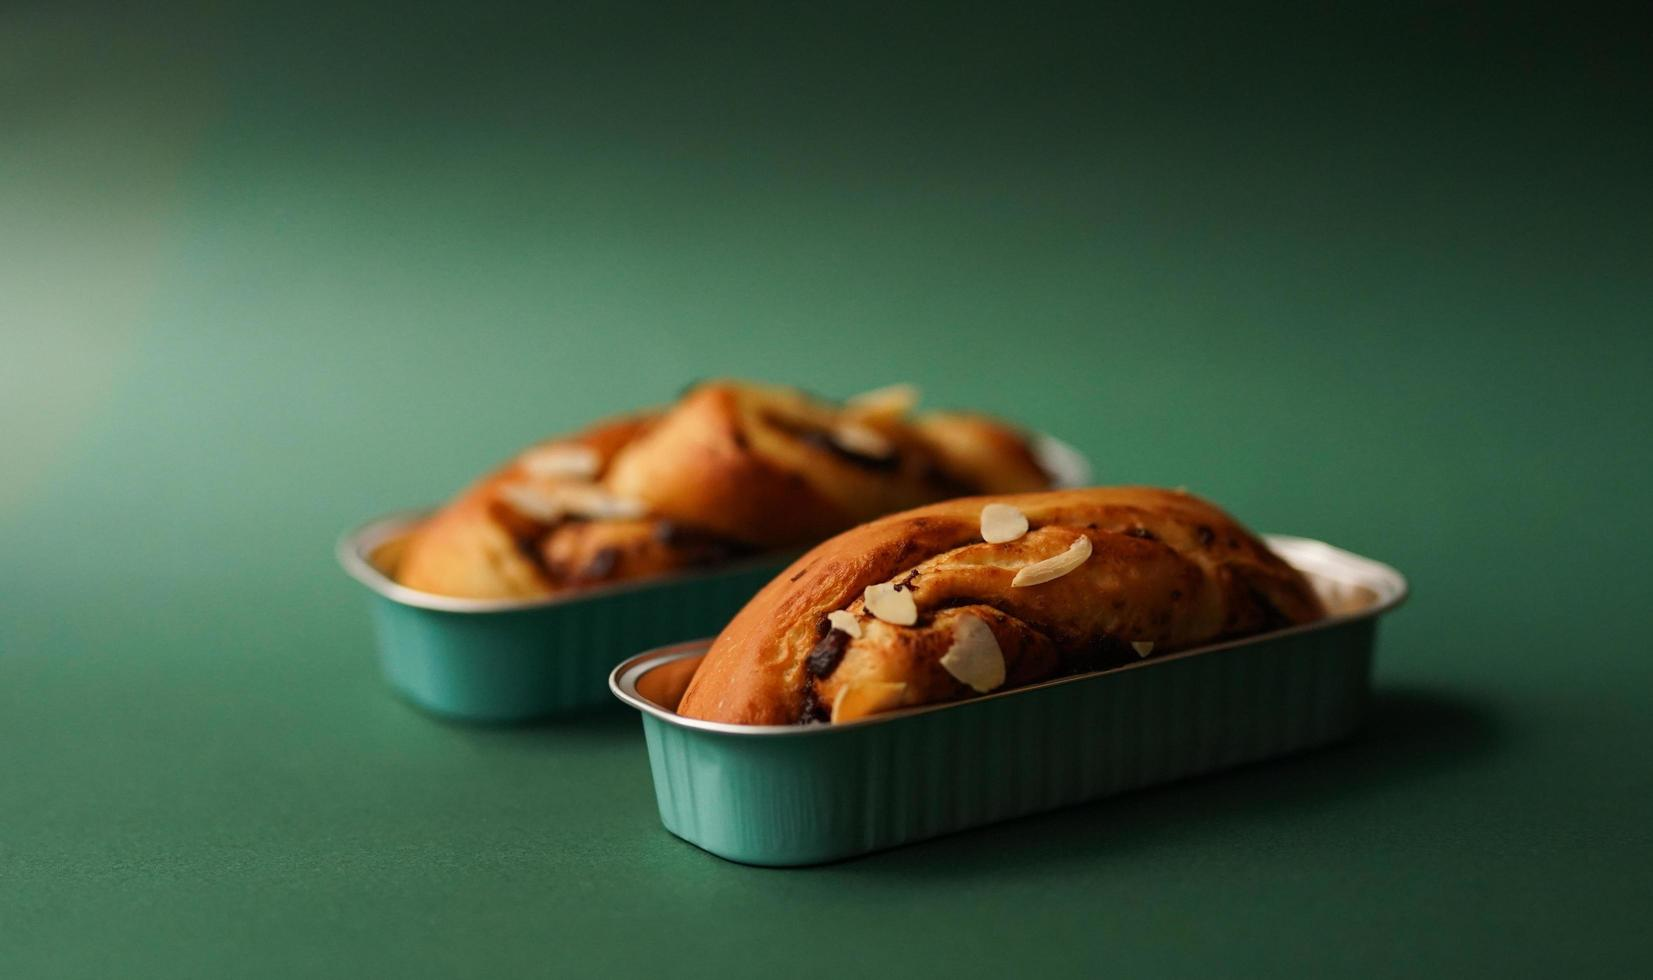 Two banana cakes on green background photo